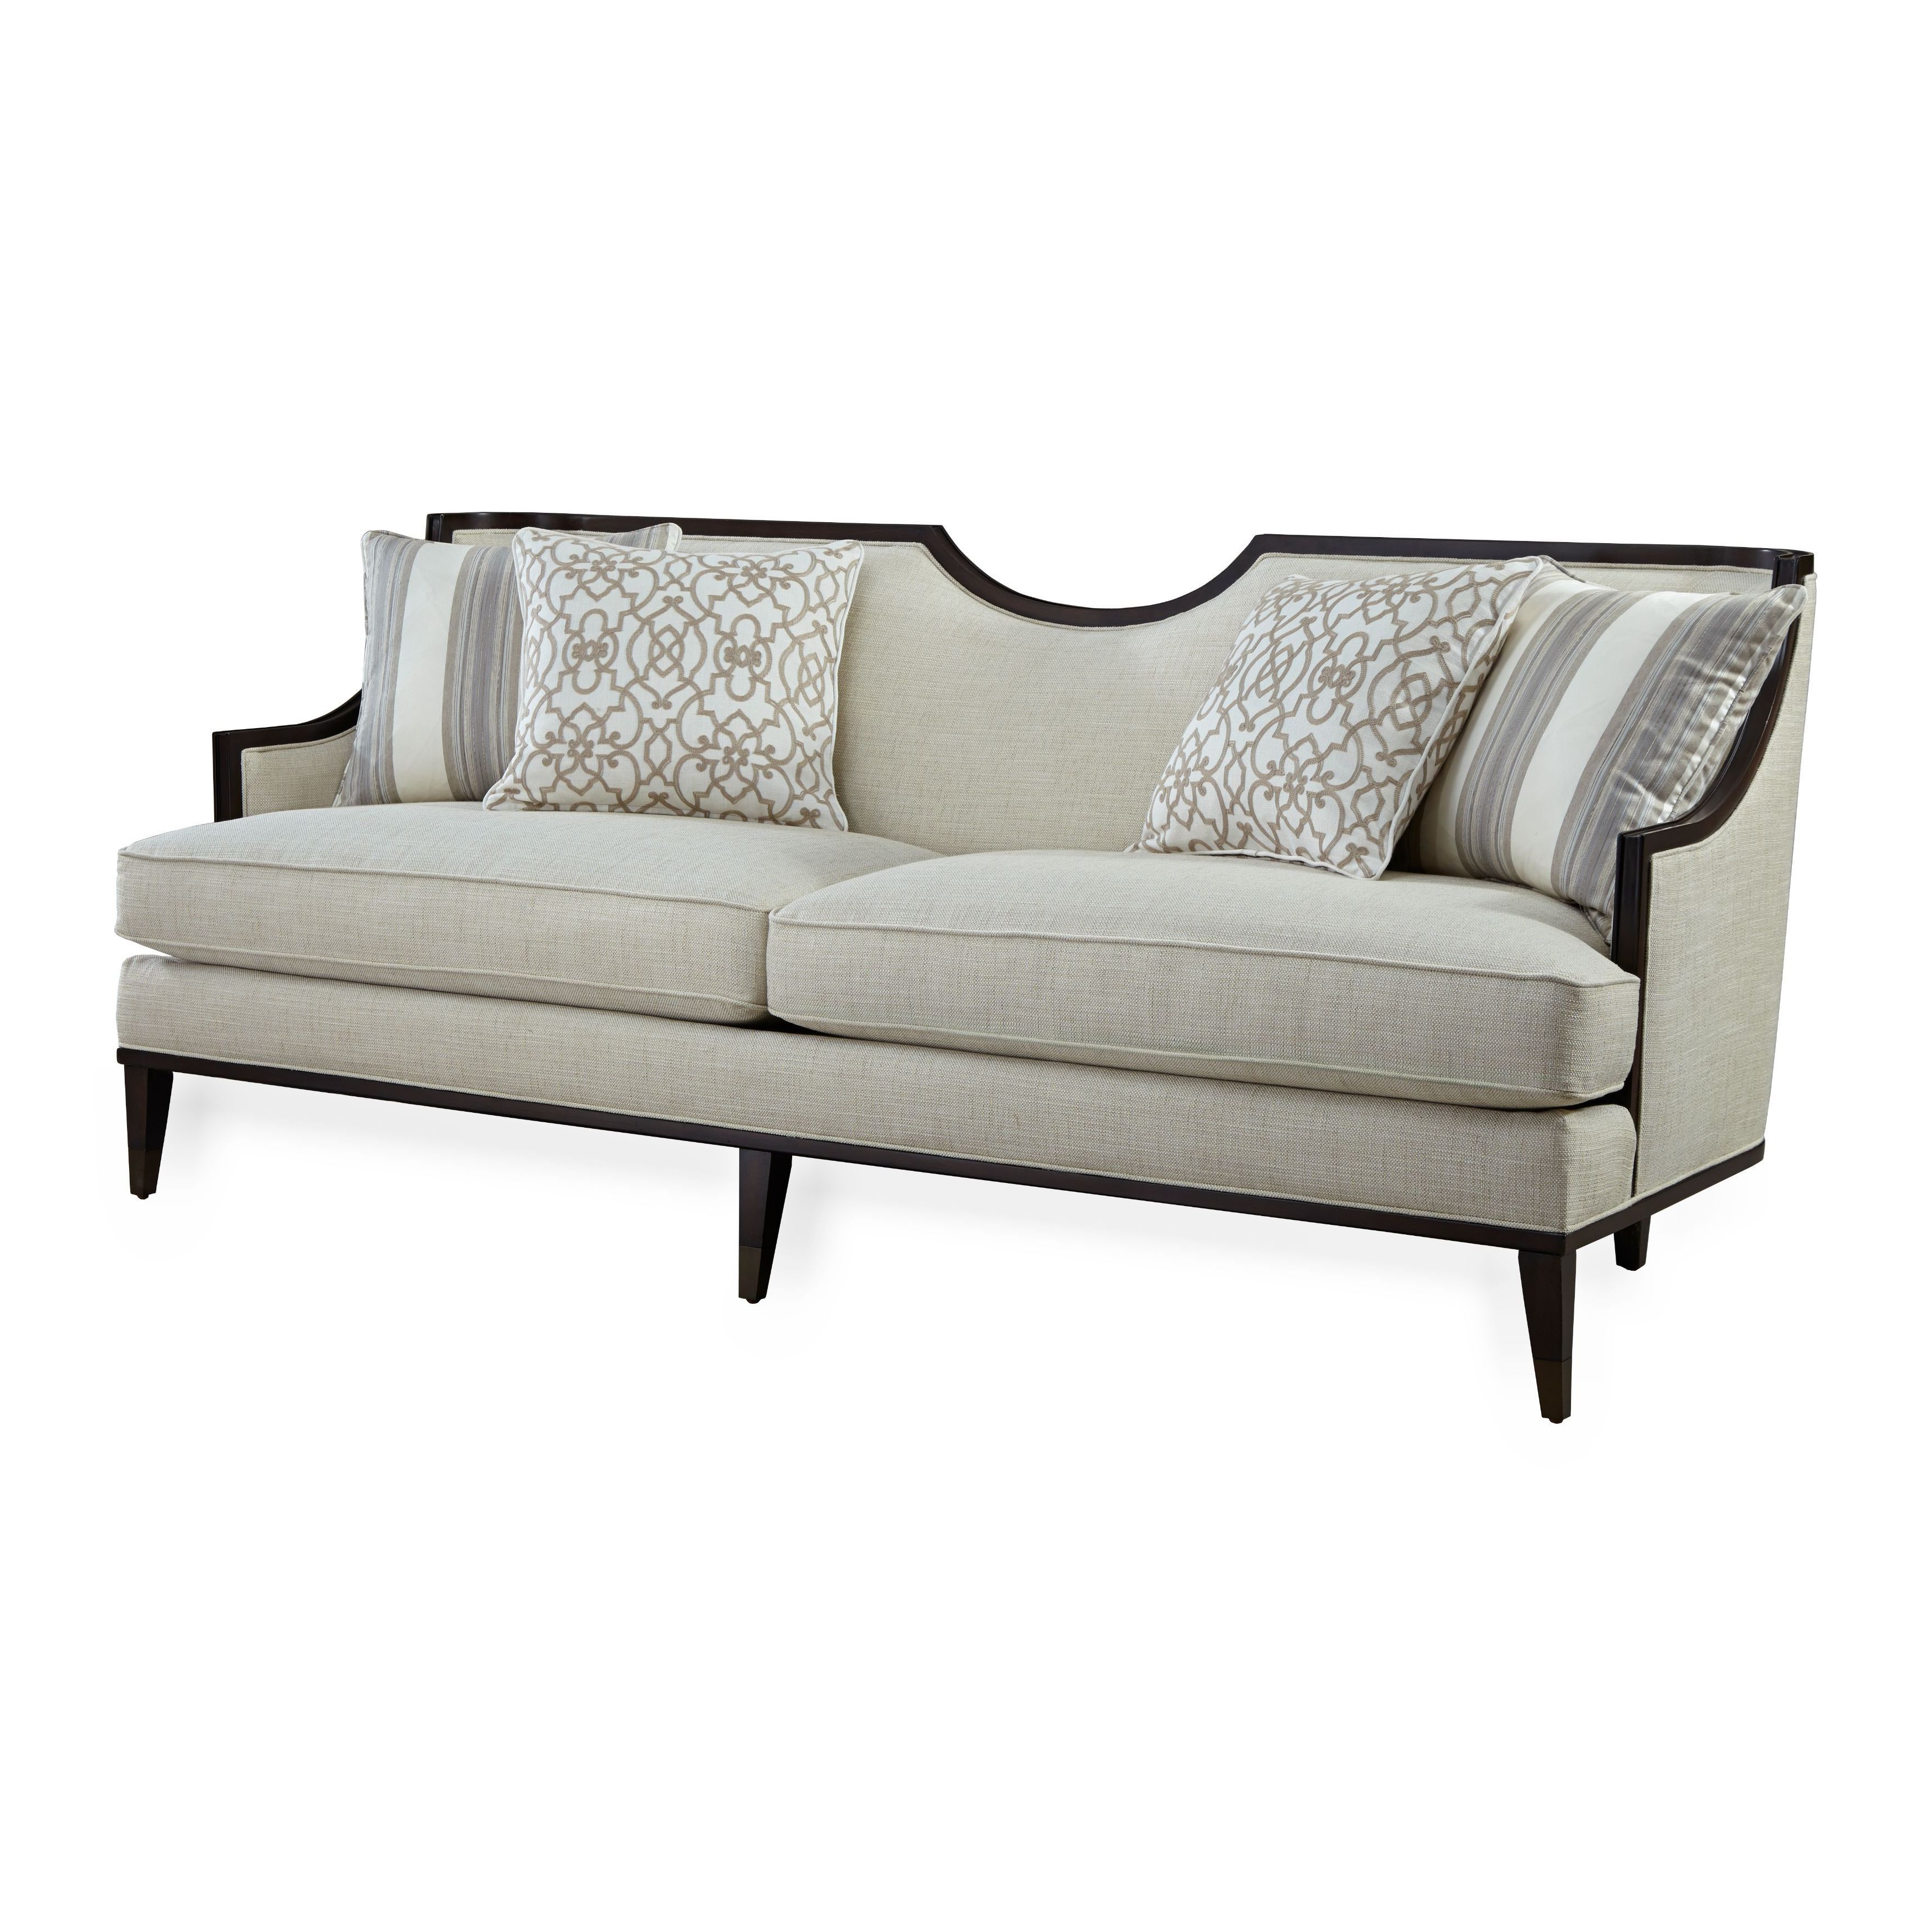 Latest Shop A.r.t. Furniture Harper Ivory Sofa – Free Shipping Today With Regard To Harper Down Oversized Sofa Chairs (Gallery 13 of 20)